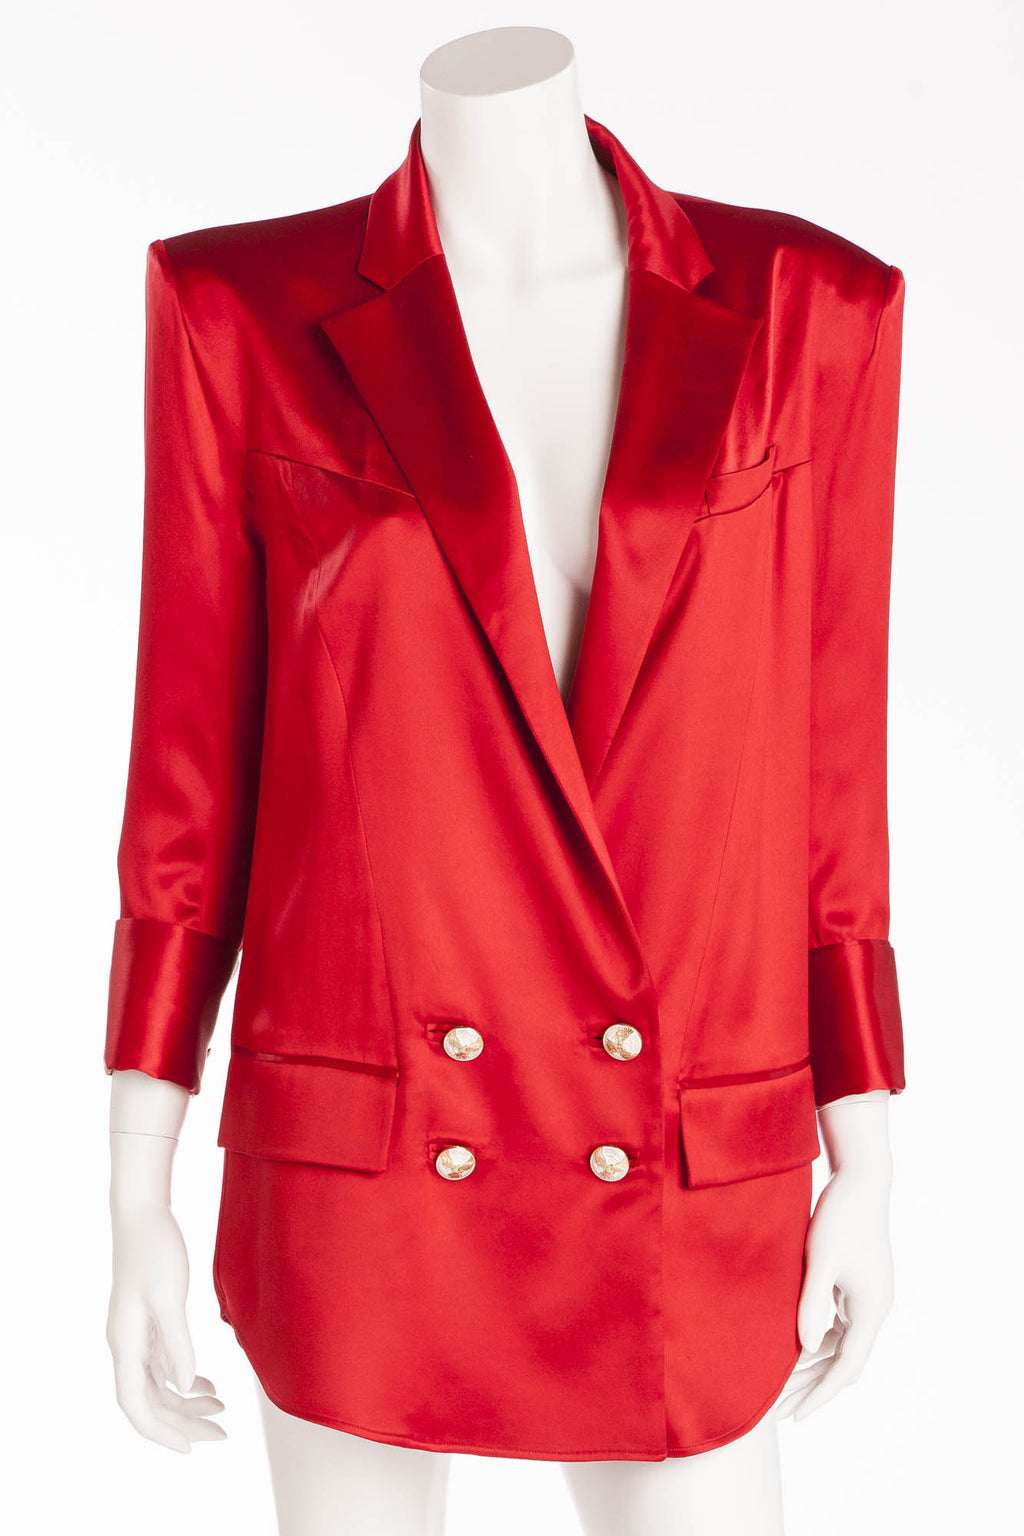 Balmain - New with Tags Red Silk Blazer with Gold Buttons - FR 40